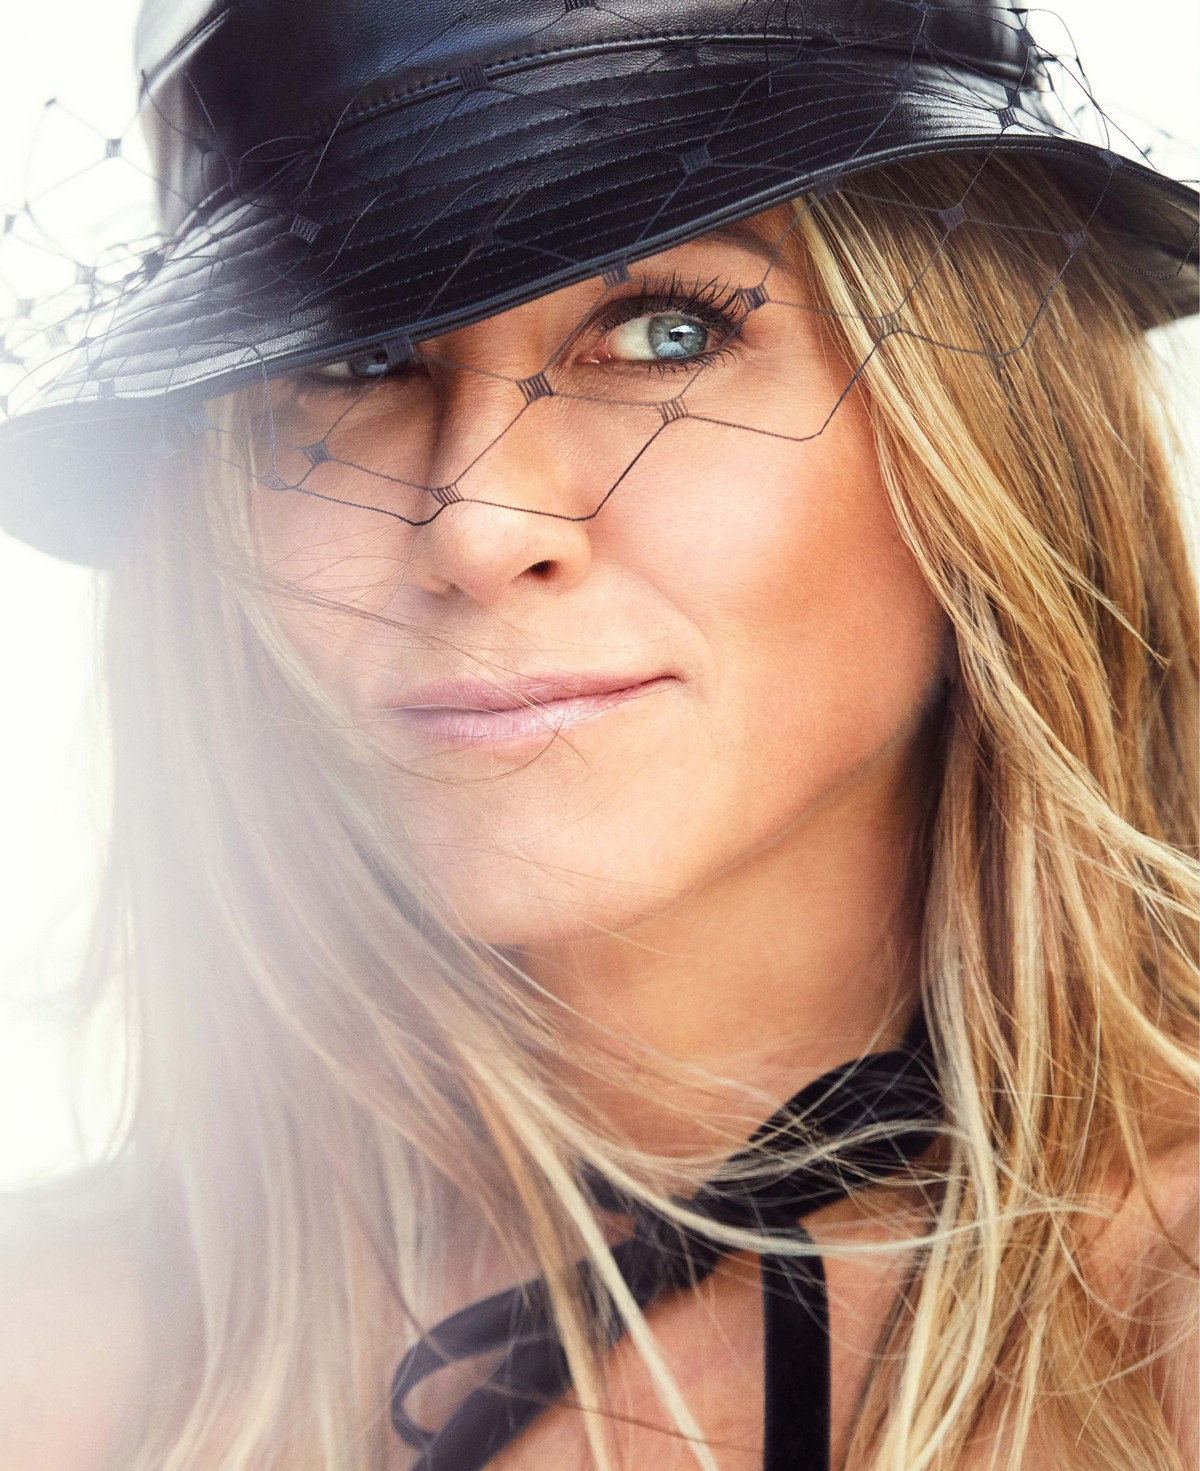 Jennifer Aniston Cover Photoshoot for Harper's Bazaar US Magazine, June/July 2019 1